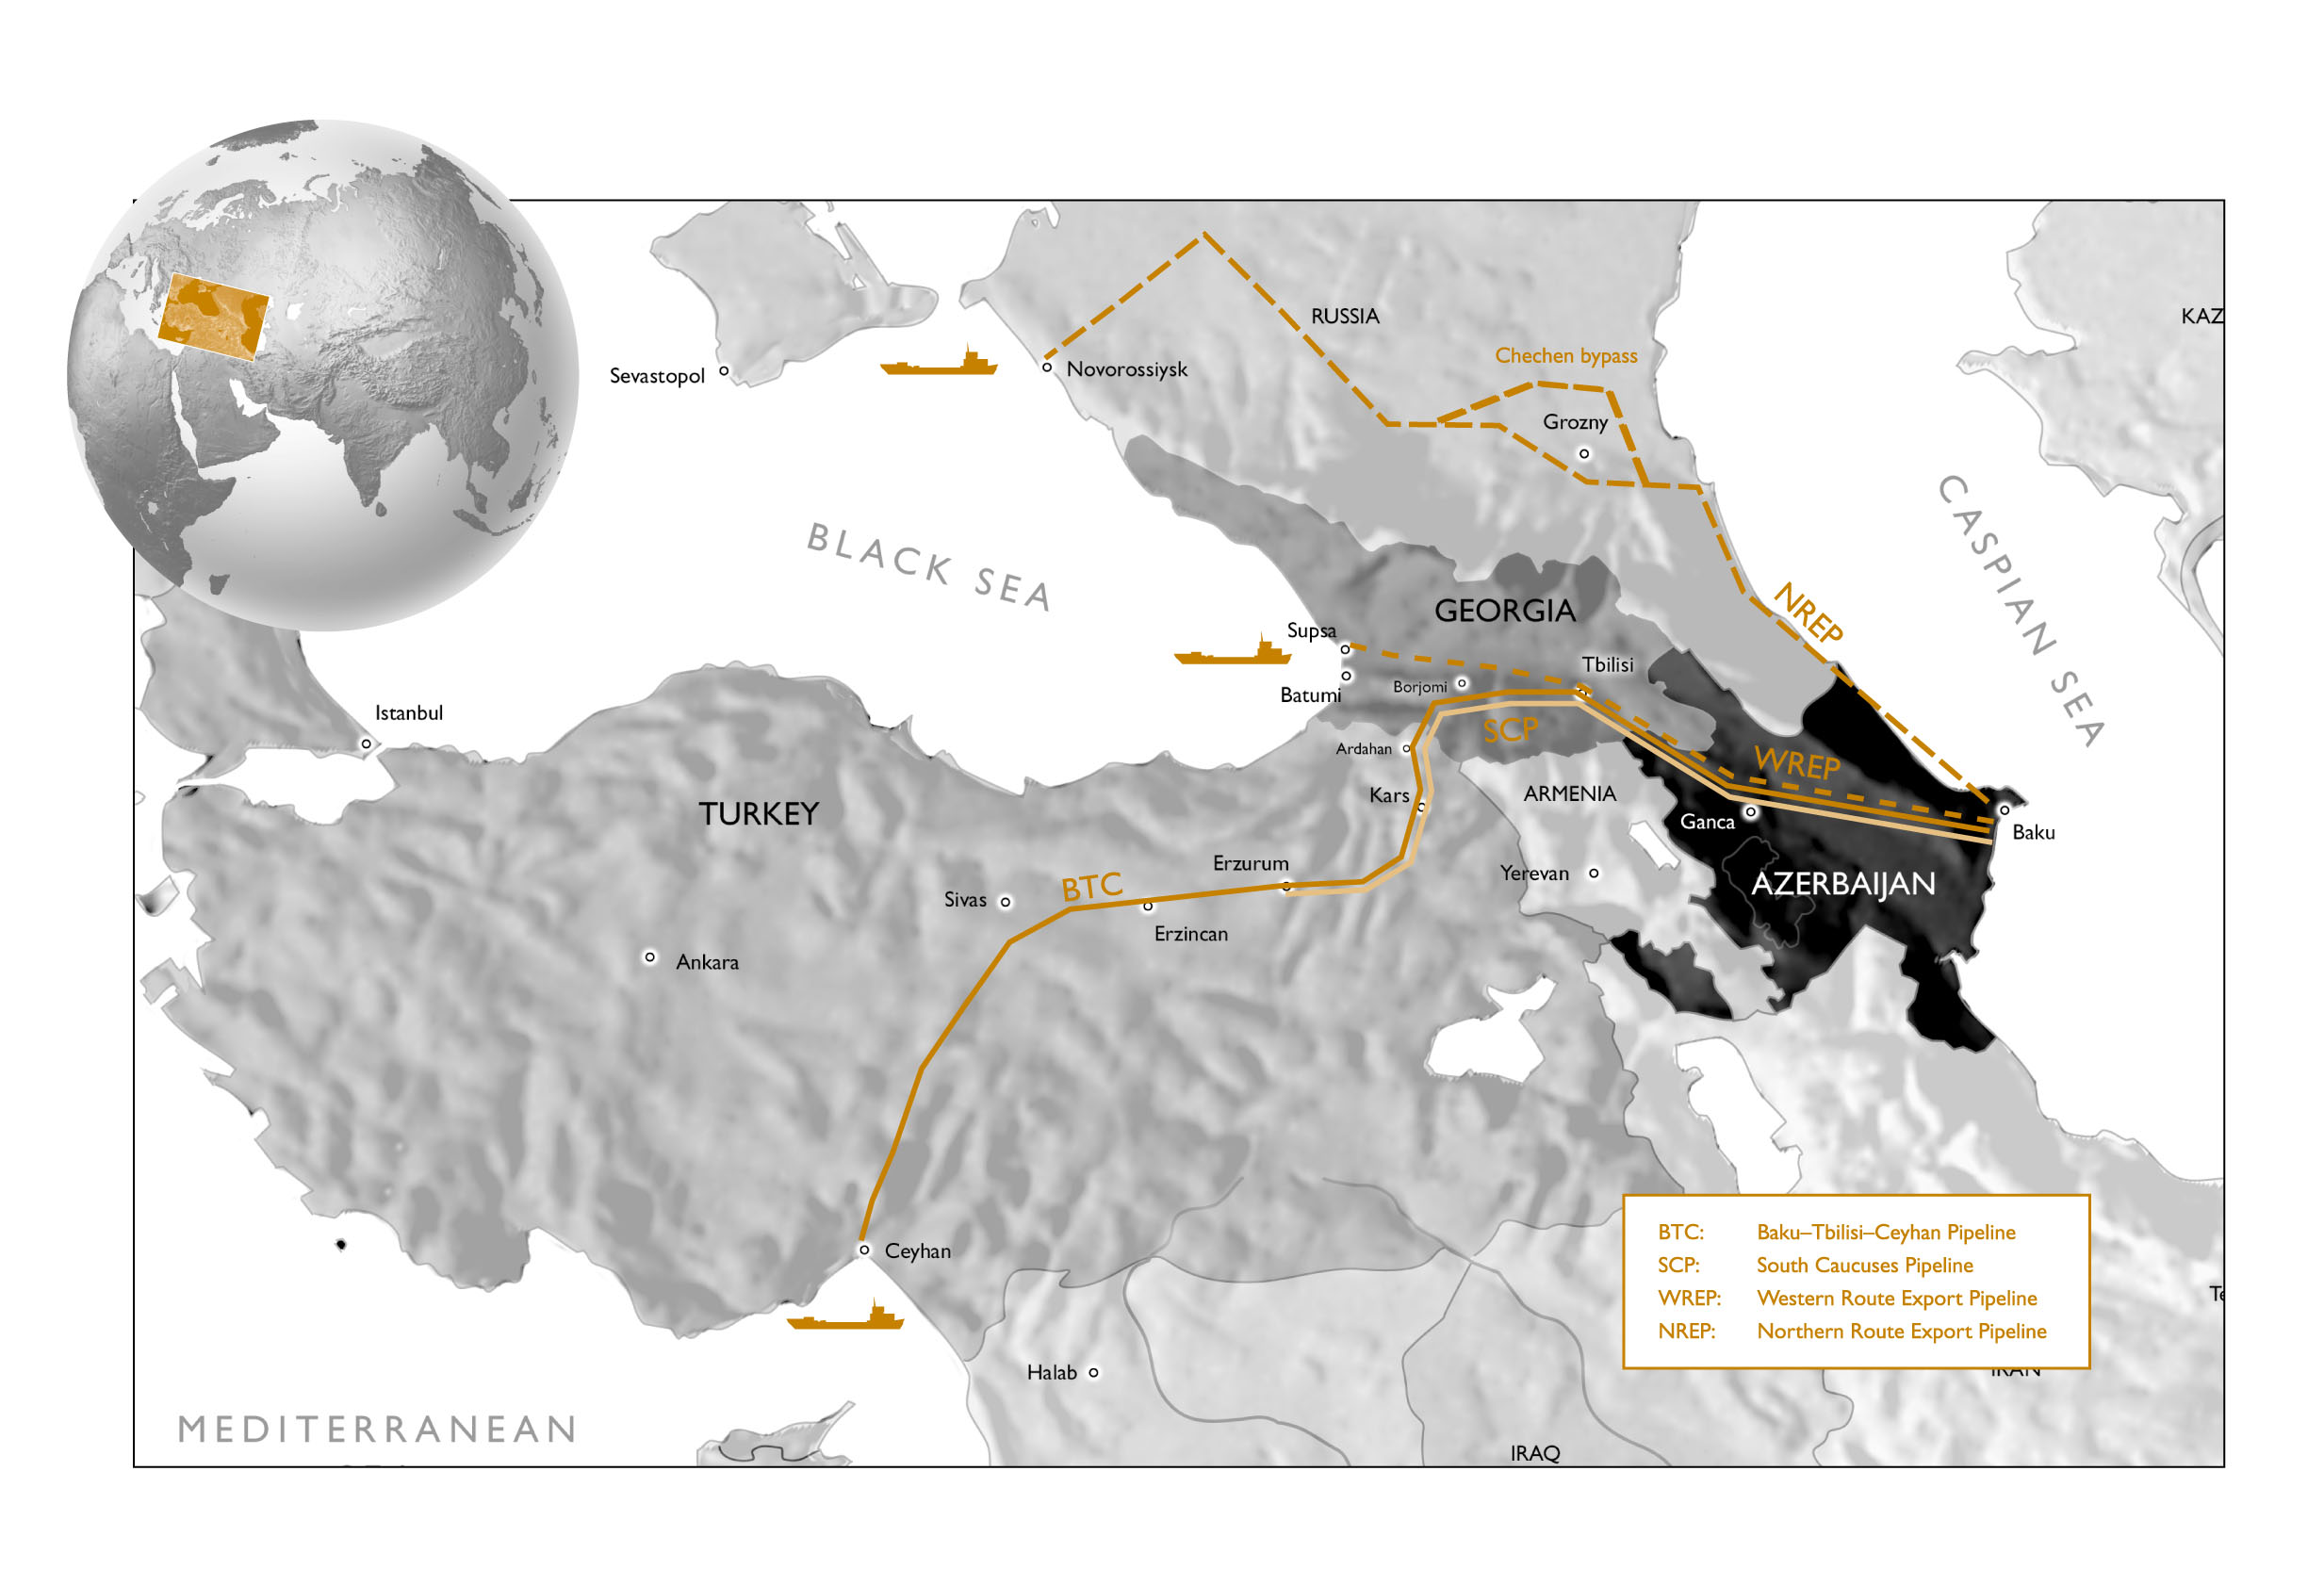 Campanastan The Wests Interests in the South Caucasus are AGO